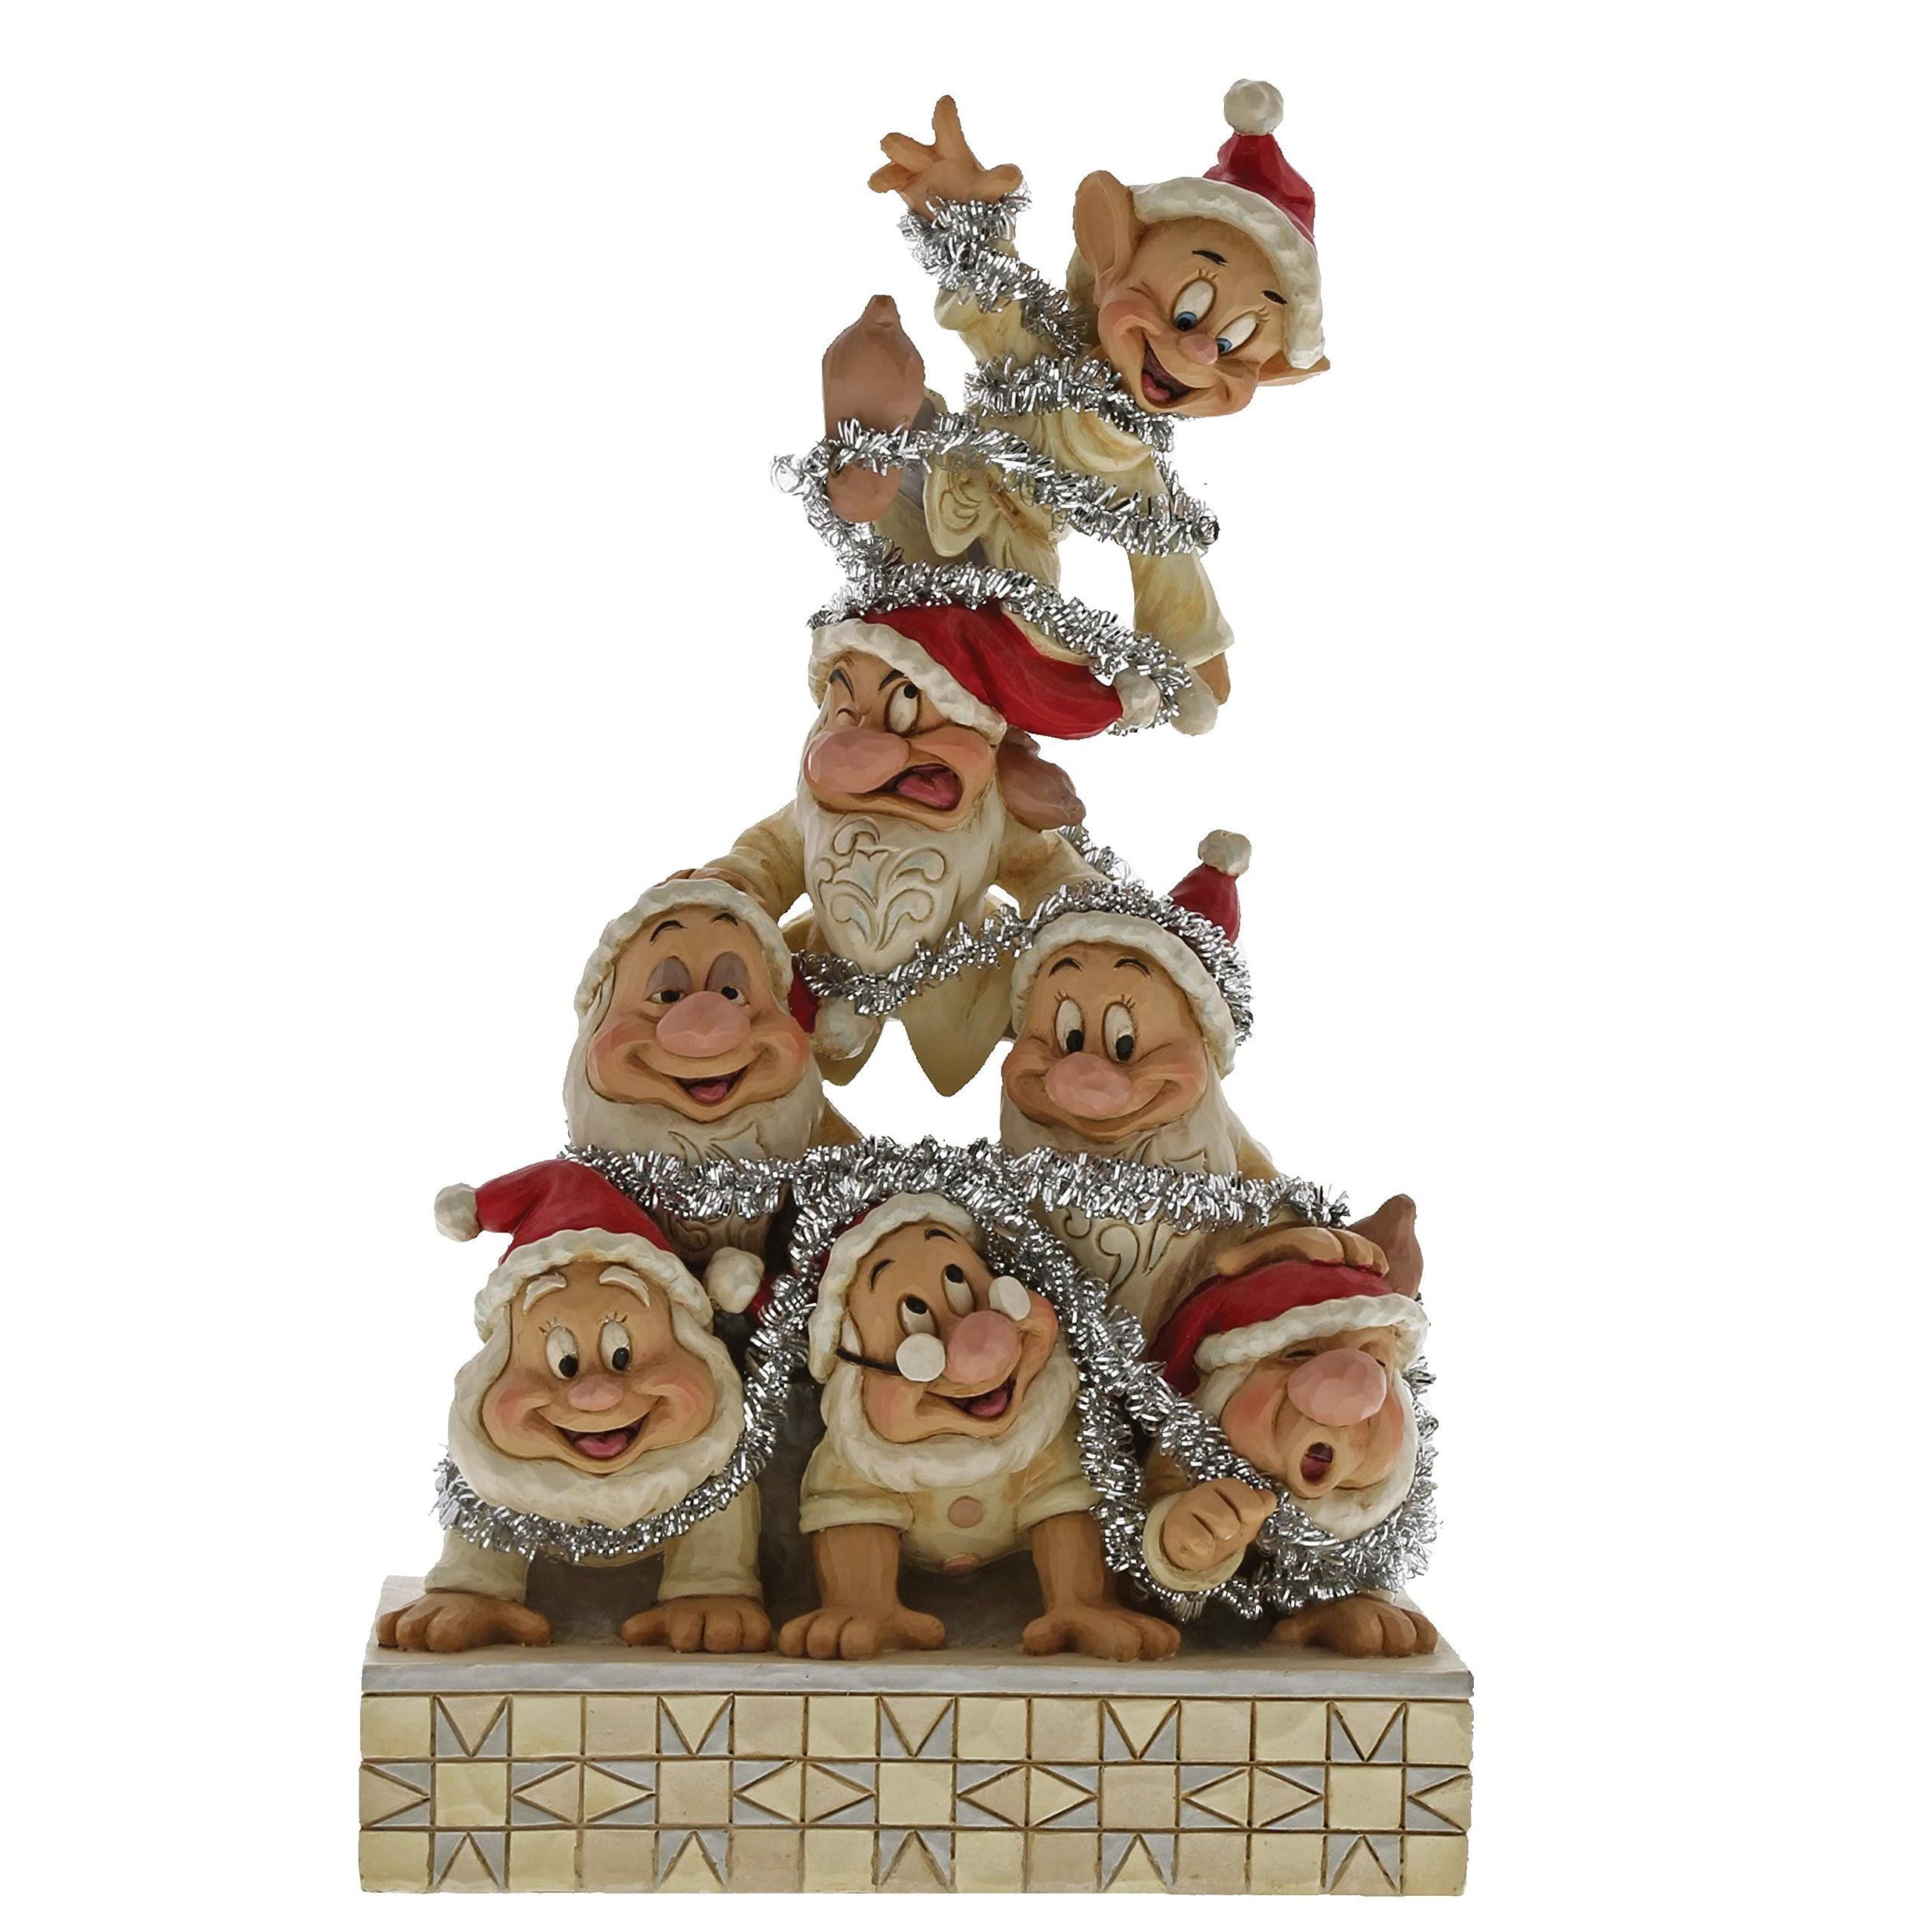 Disney Traditions 'Precarious Pyramid' Seven Dwarfs Figurine